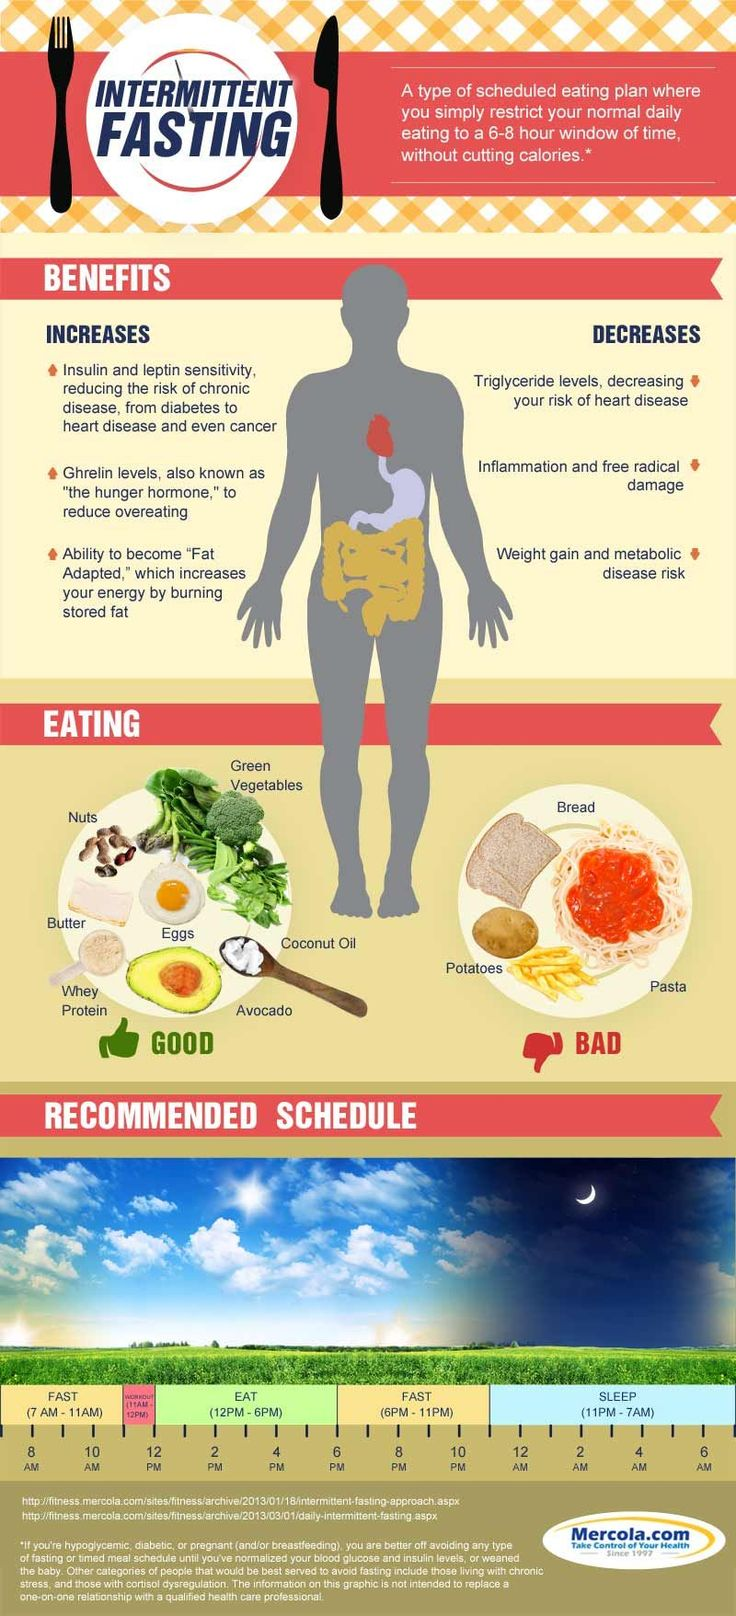 Helpful infographic for Intermittent Fasting - I think the link may be spam